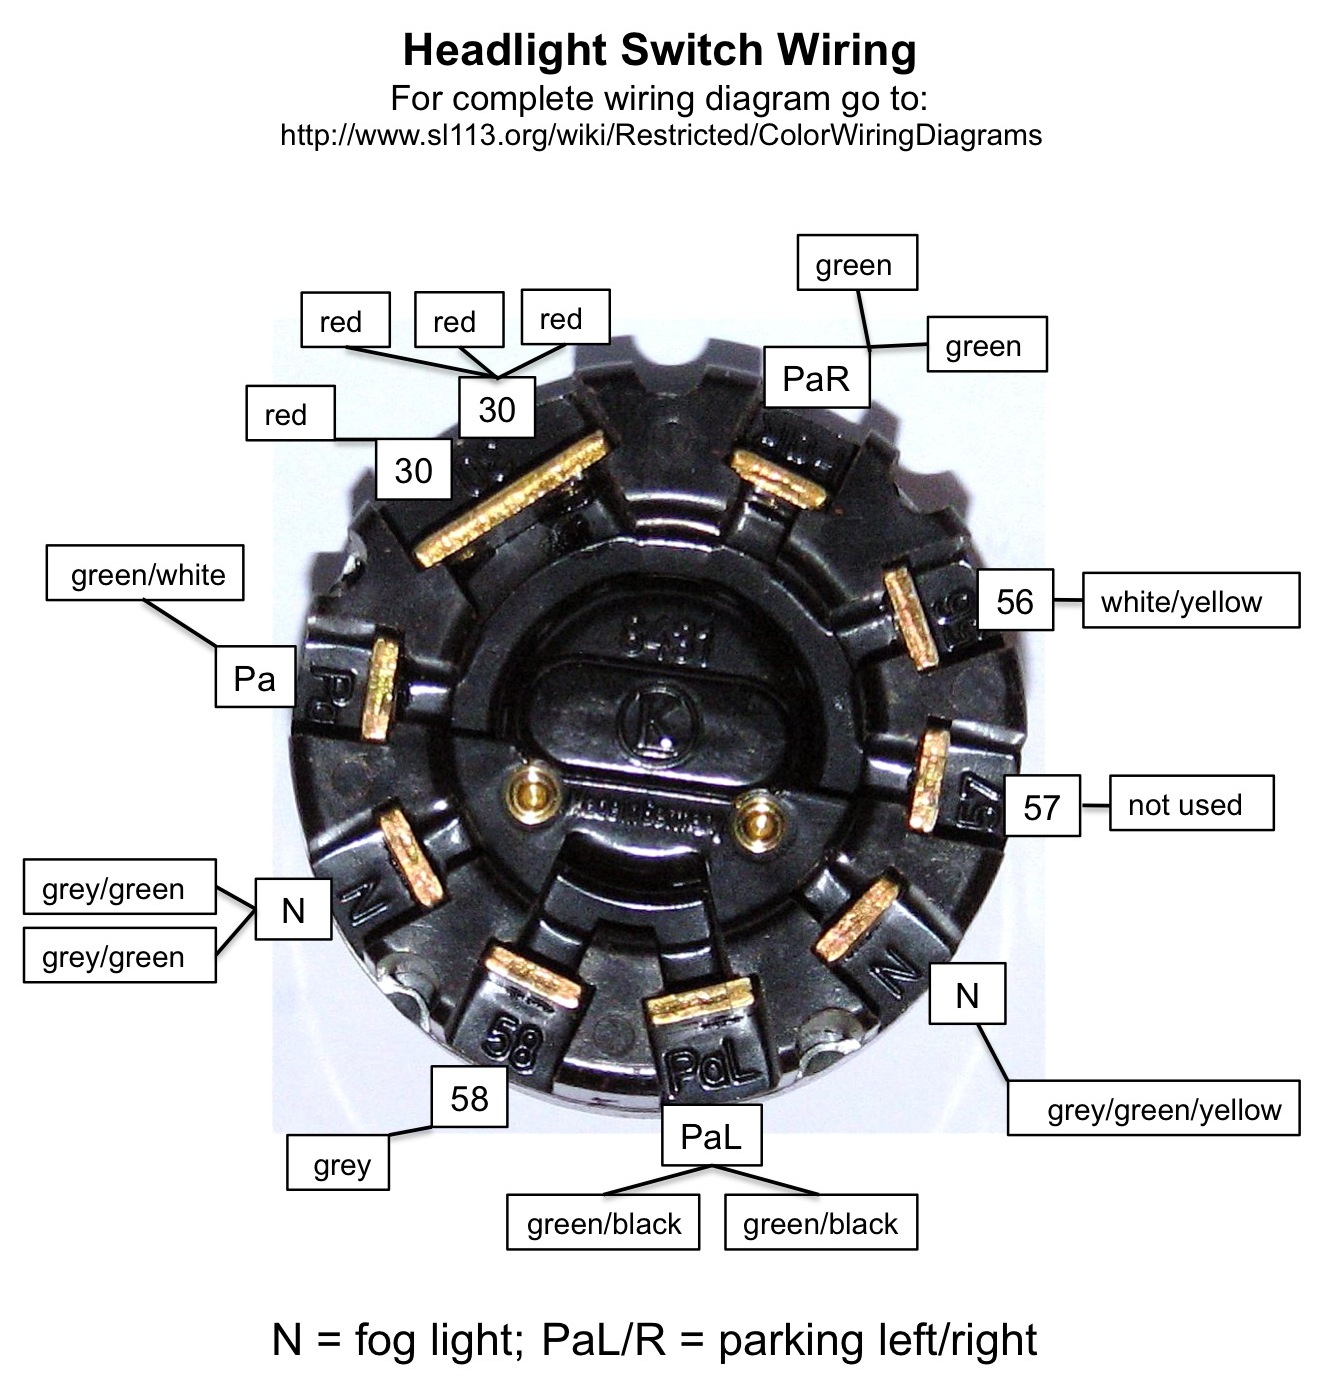 hight resolution of car headlight switch wiring wiring diagram blog car dimmer switch wiring